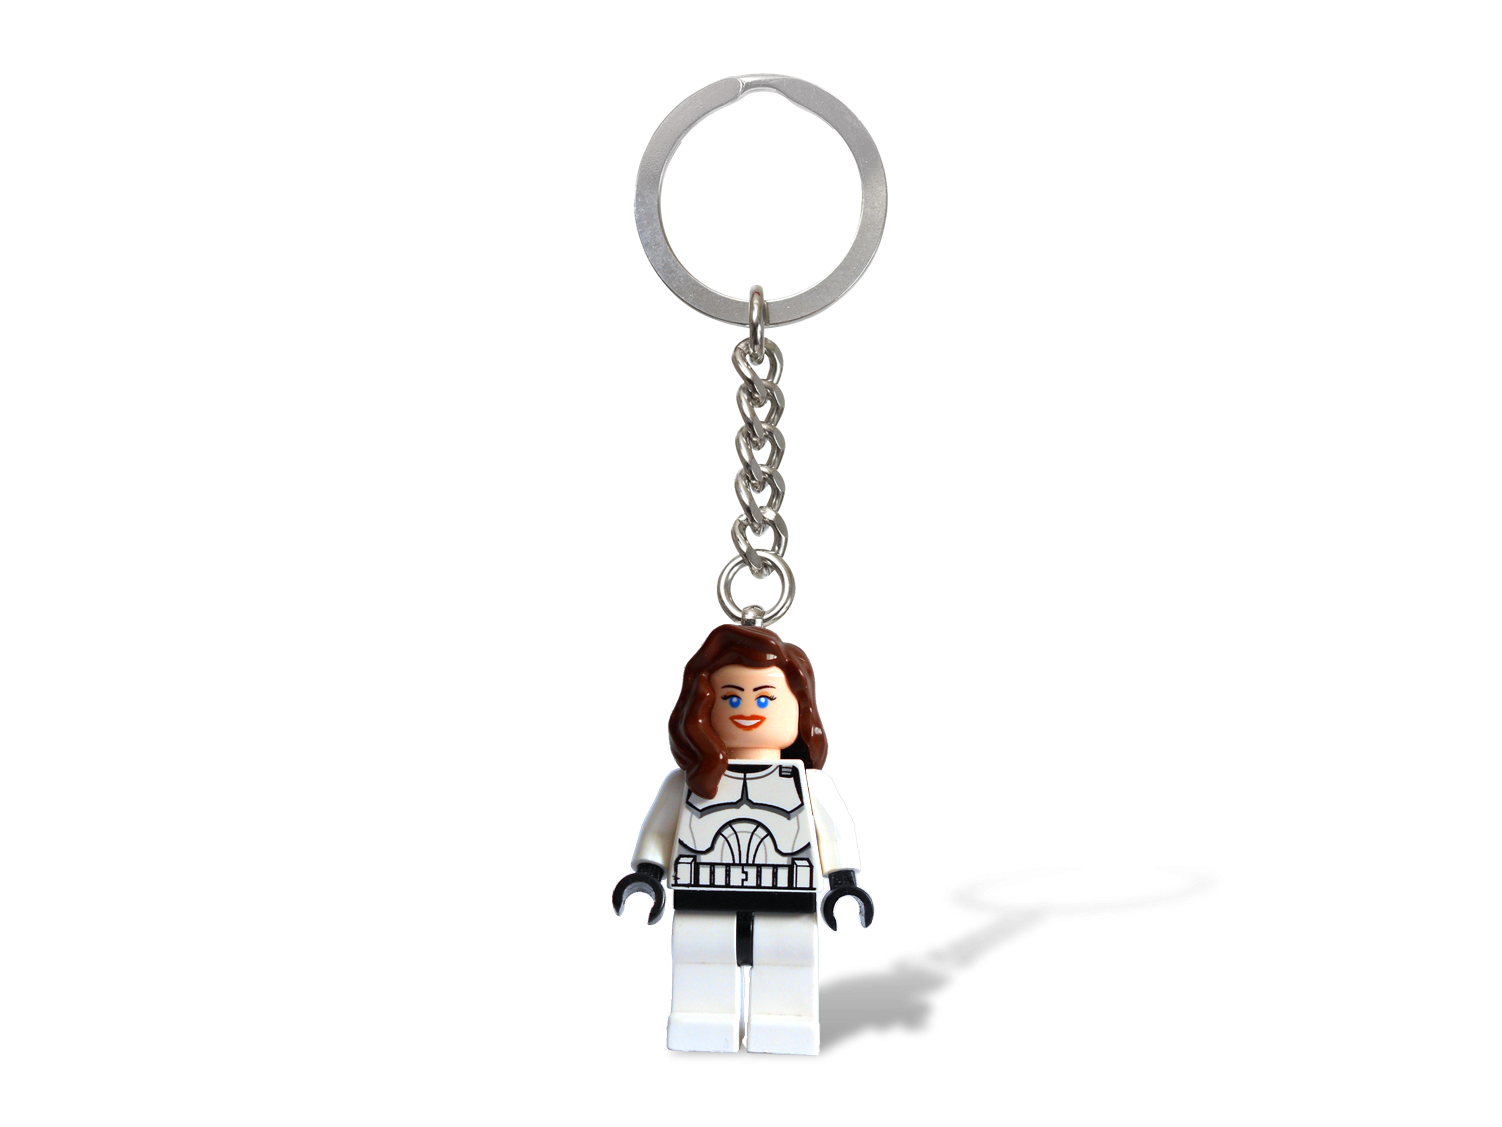 Keychain PNG HD SVG Clip arts